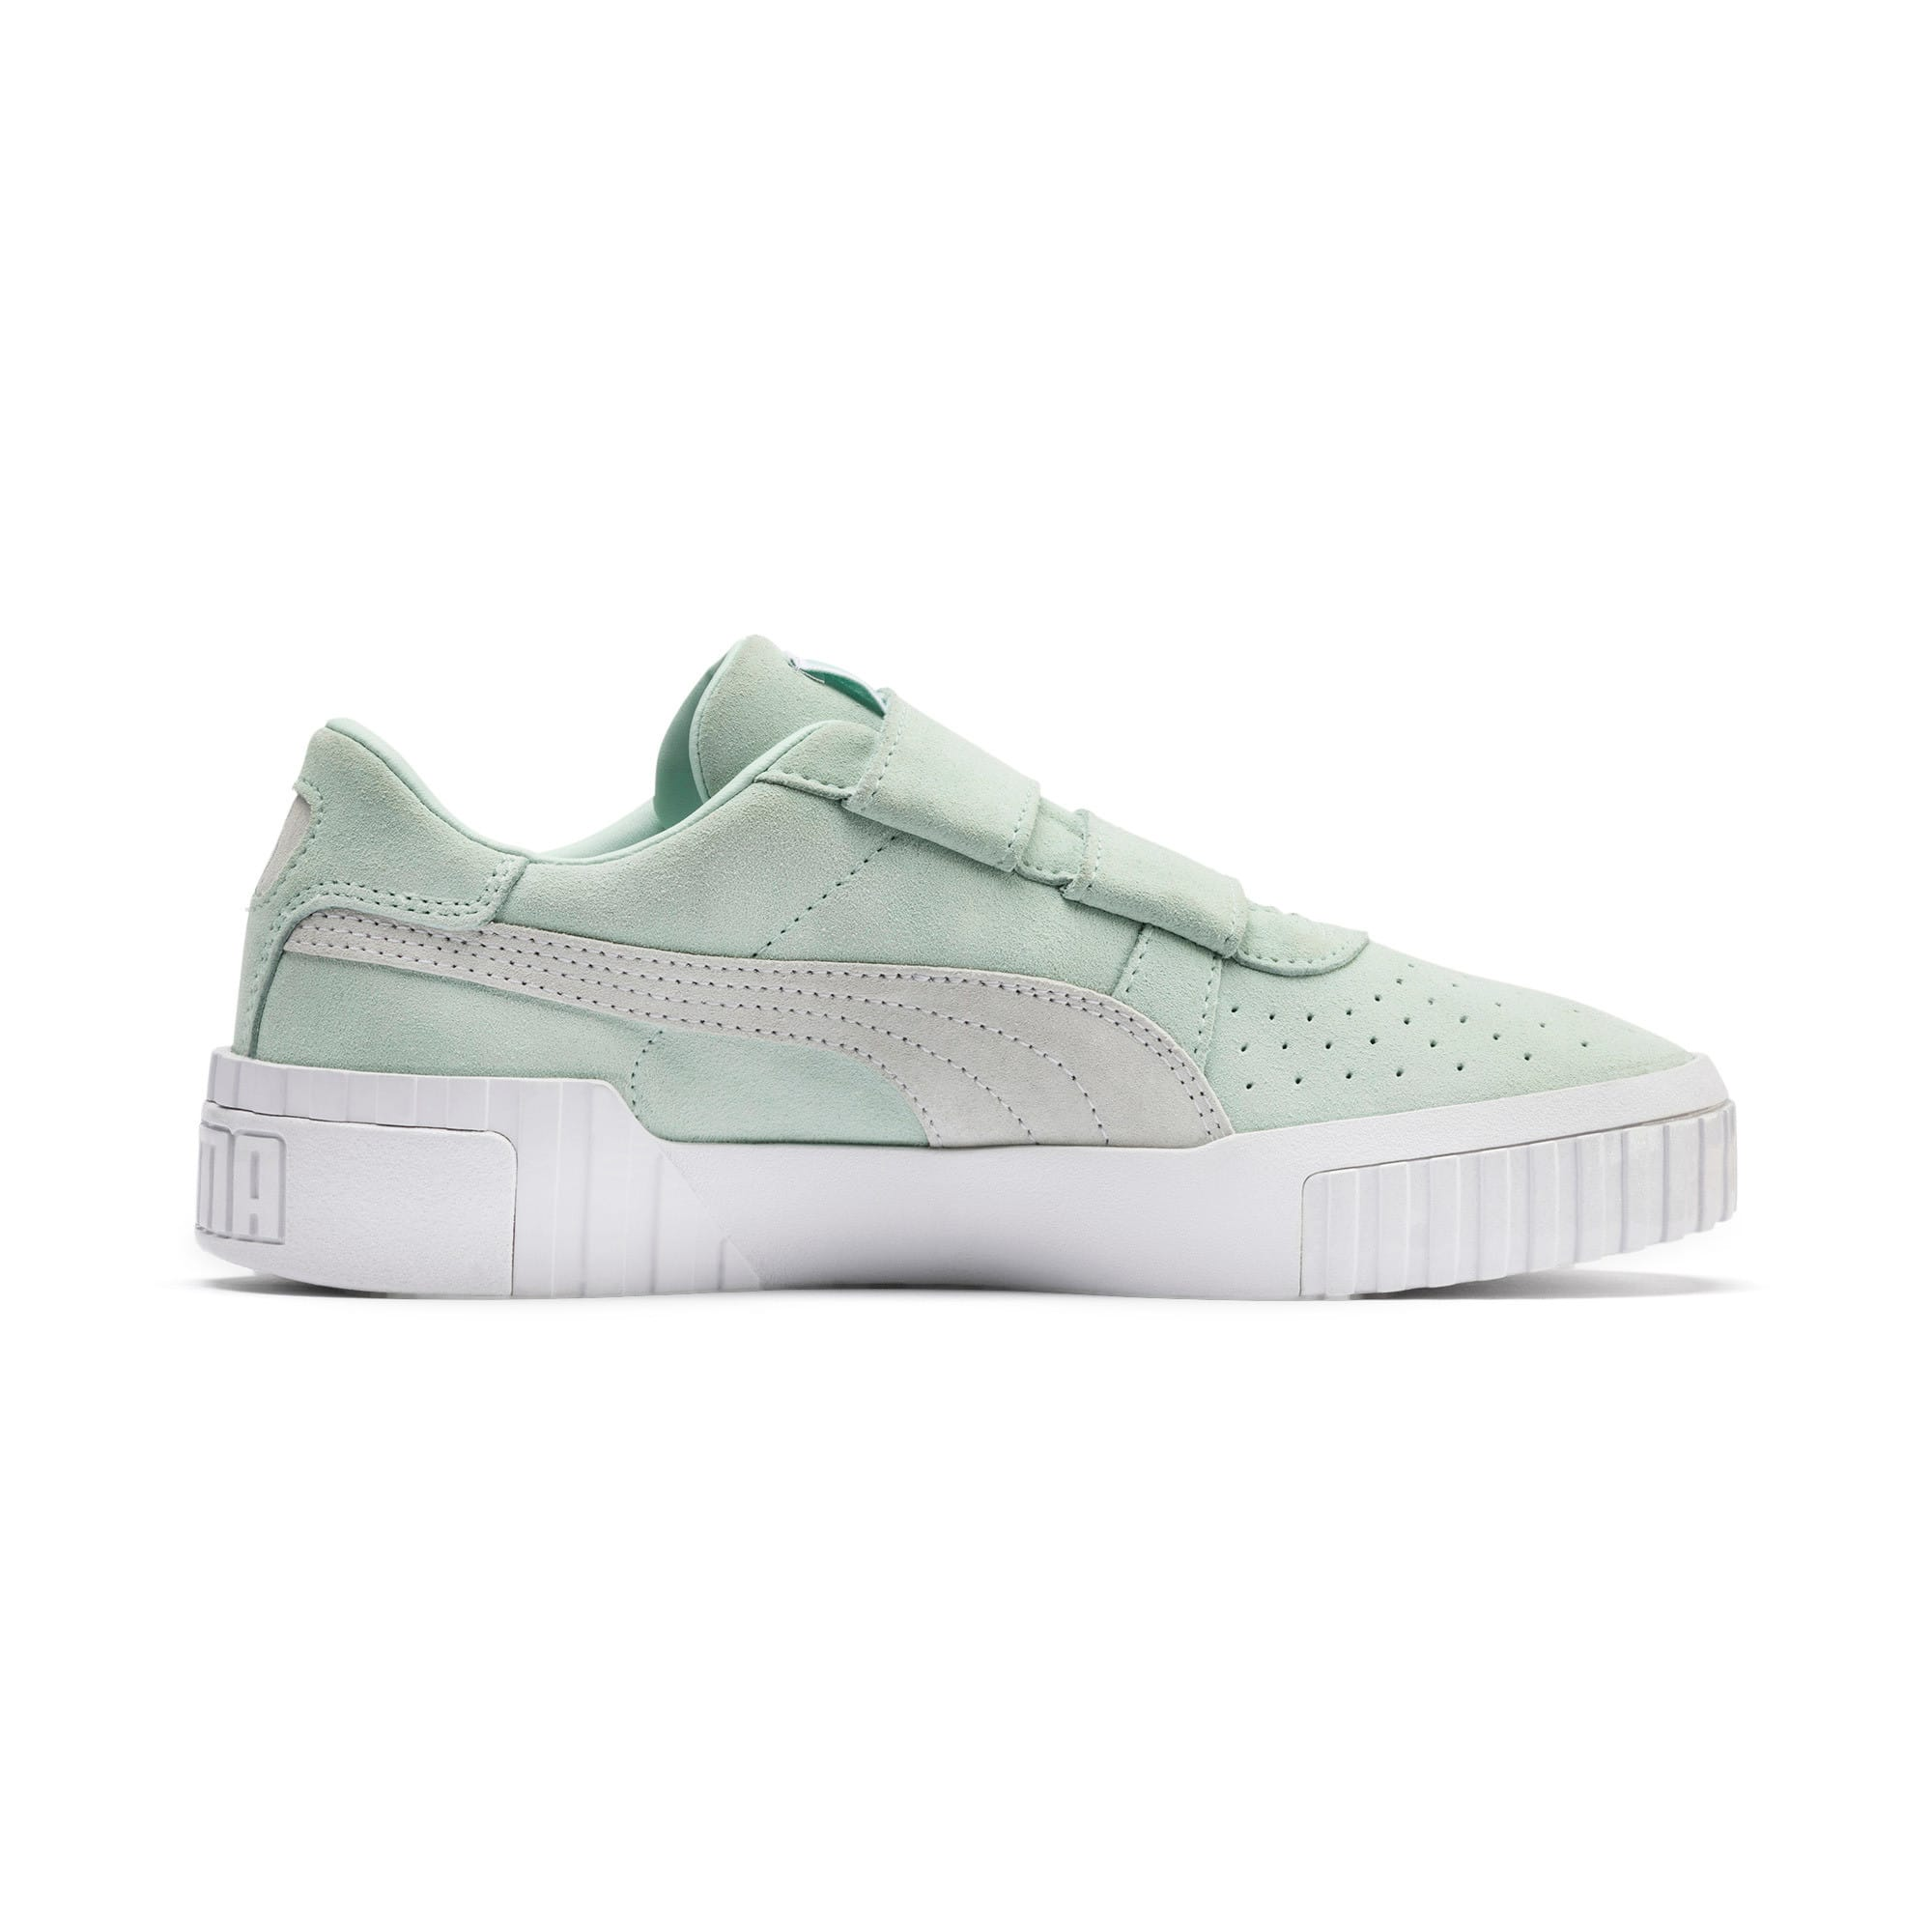 Thumbnail 6 of PUMA x SELENA GOMEZ Cali Women's Trainers, Fair Aqua-Puma White, medium